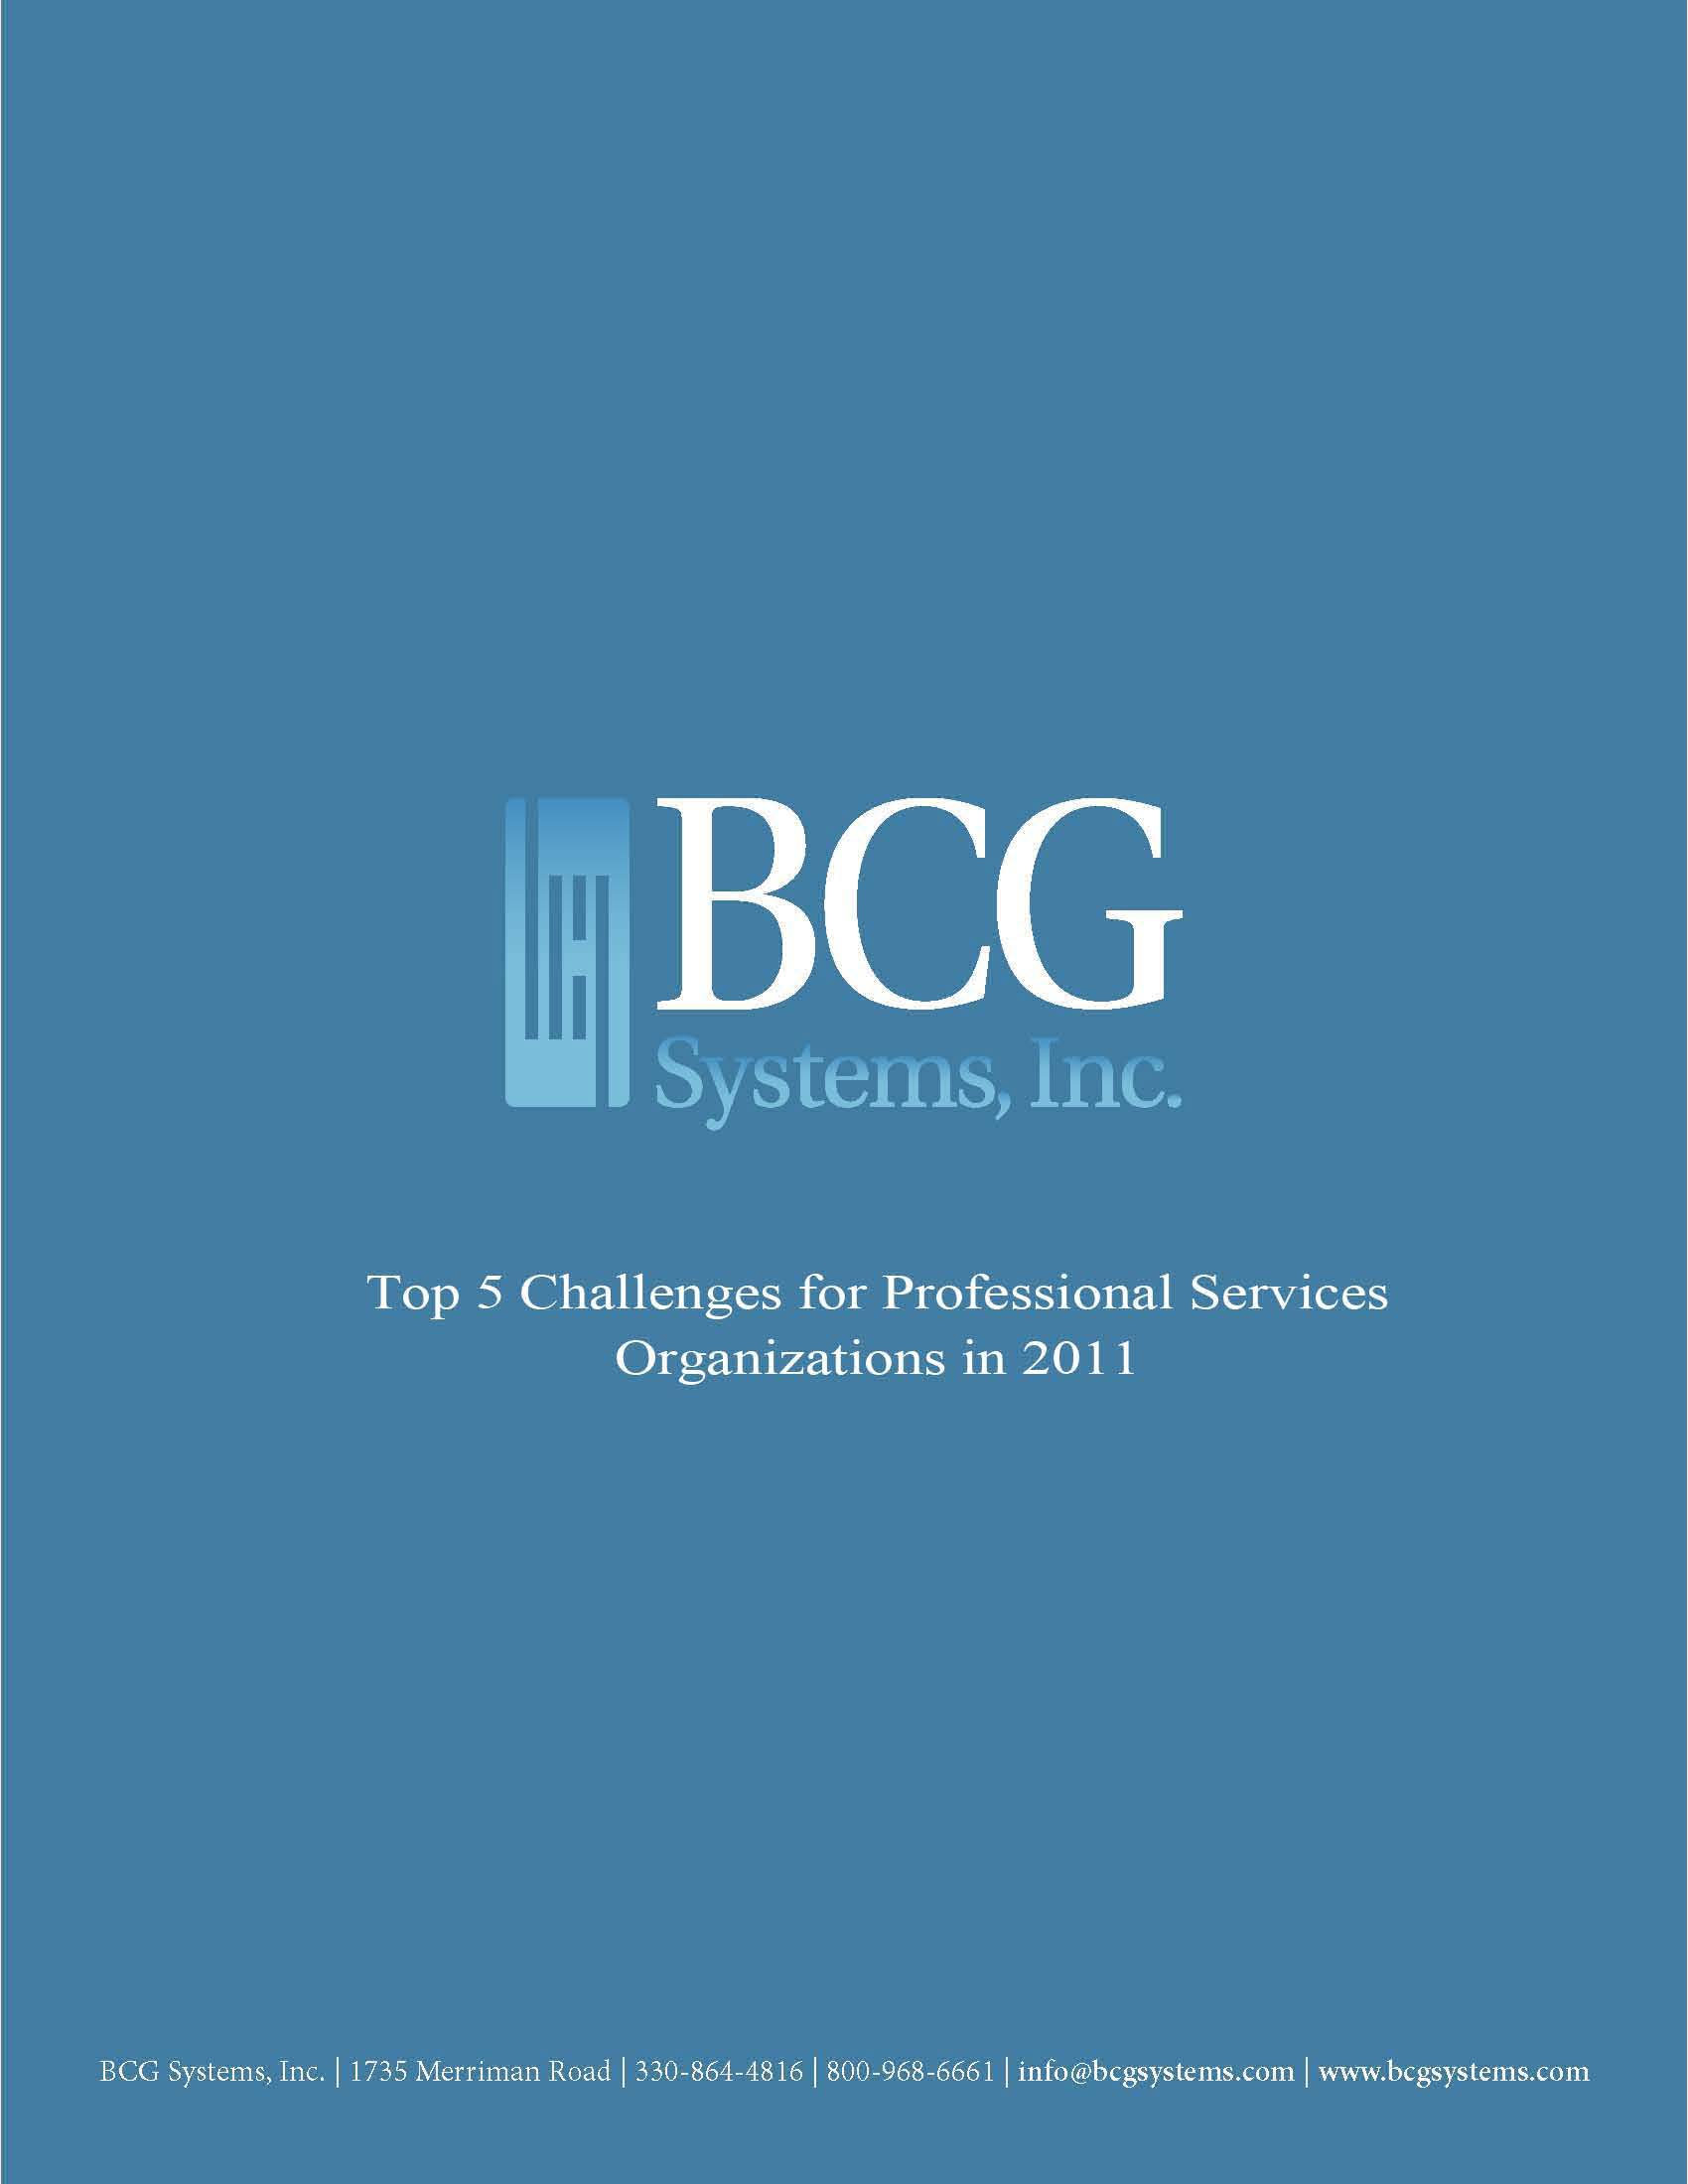 C  Users erinl Desktop Top 5 Challenges Professional Services Whitepaper 31412 Page 1